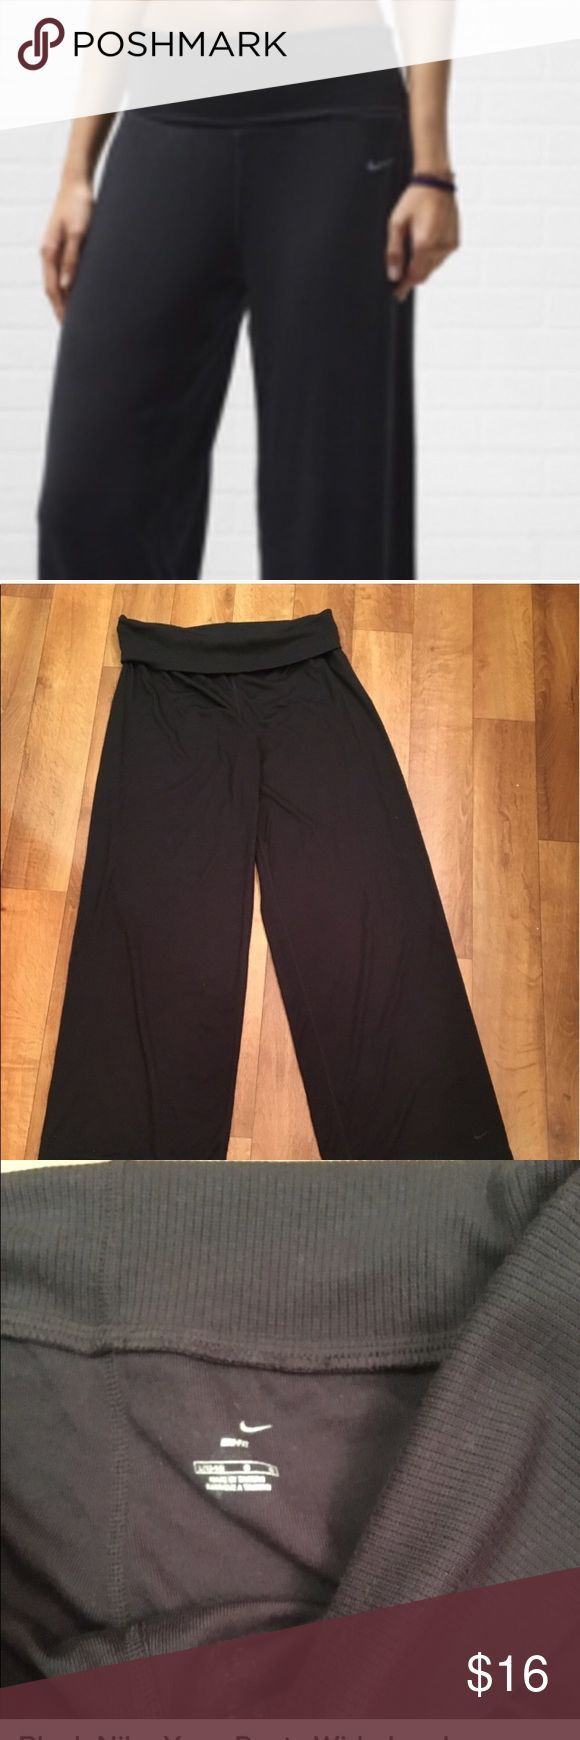 Nike Wide Leg Yoga Pants L Similar to the 1st photo these pants are wide legged with a fold over waist band size large like new mark to inside label 🚫no trades🚫 Pants